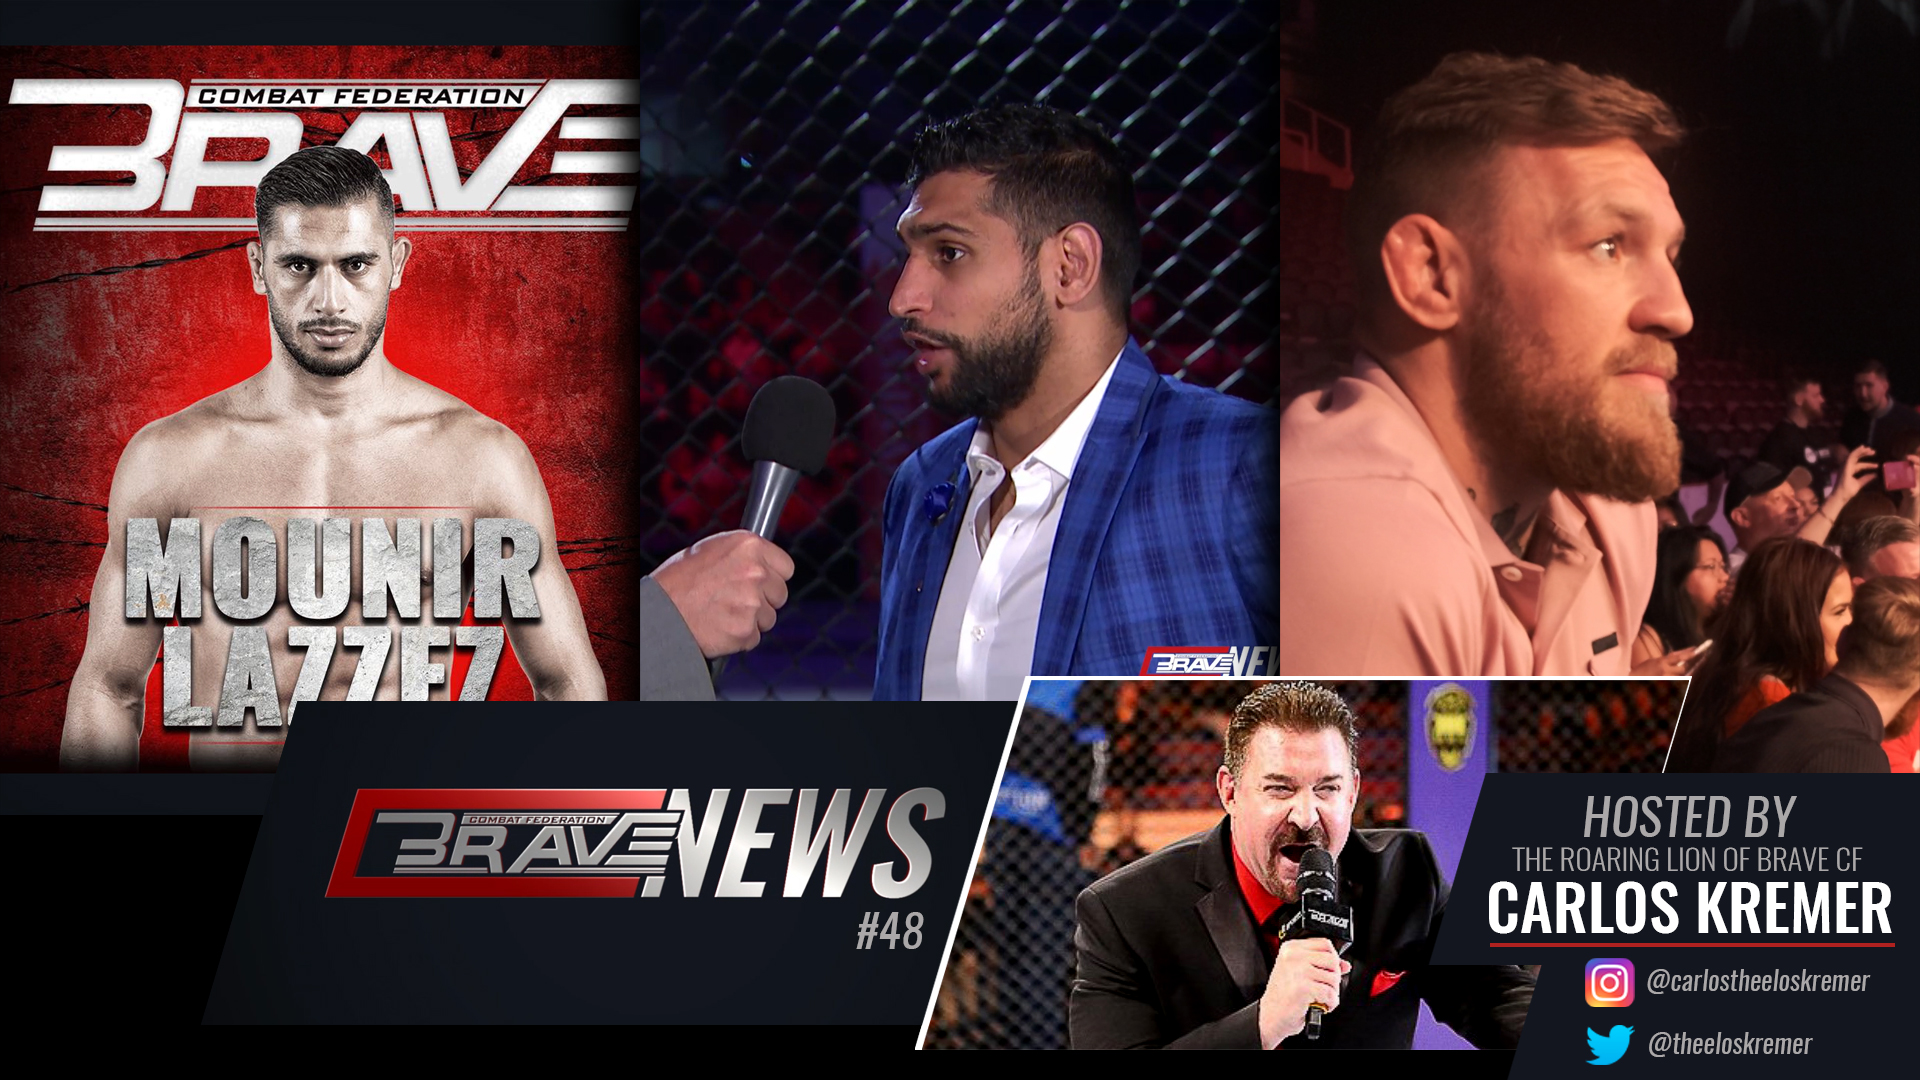 Brave News #48 - New signing announced and Brave 13 recap -